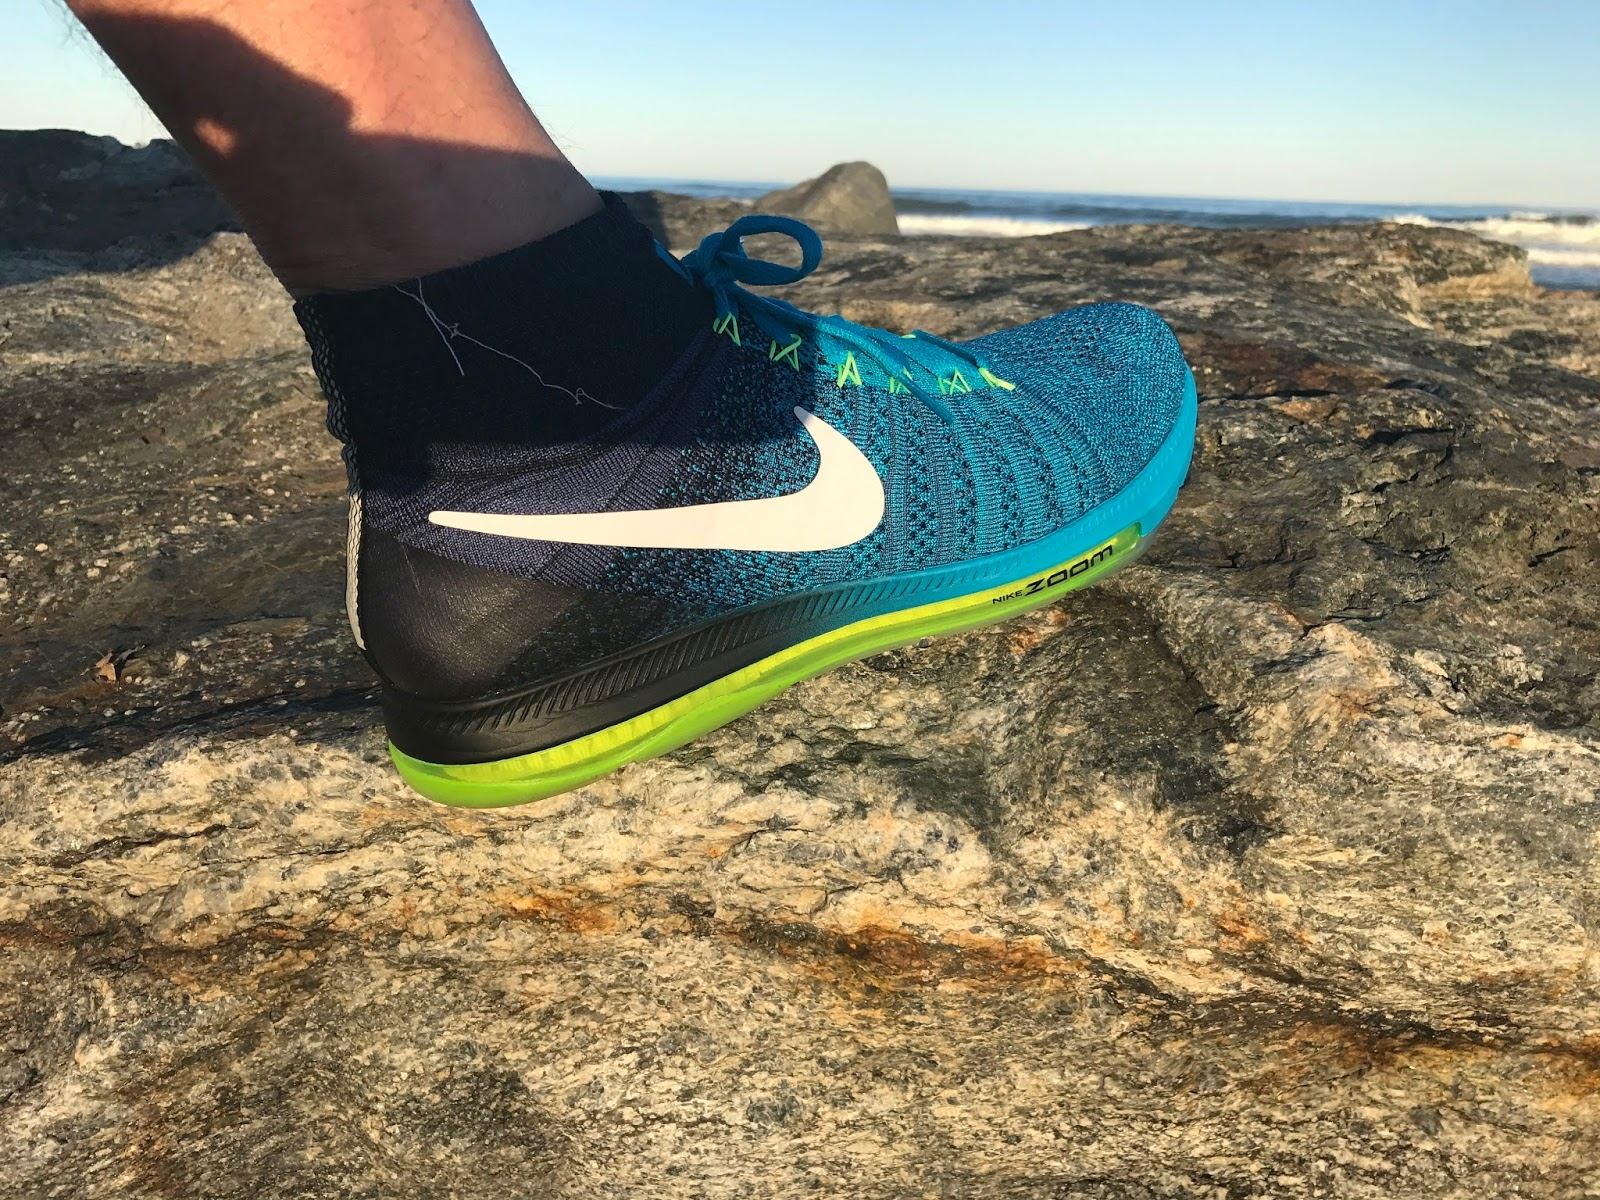 meet 7ac08 67174 I have been very pleasantly surprised by the All Out,very. Of all the  incredible midsole tech innovations of the last few years, including Boost,  the Zoom ...